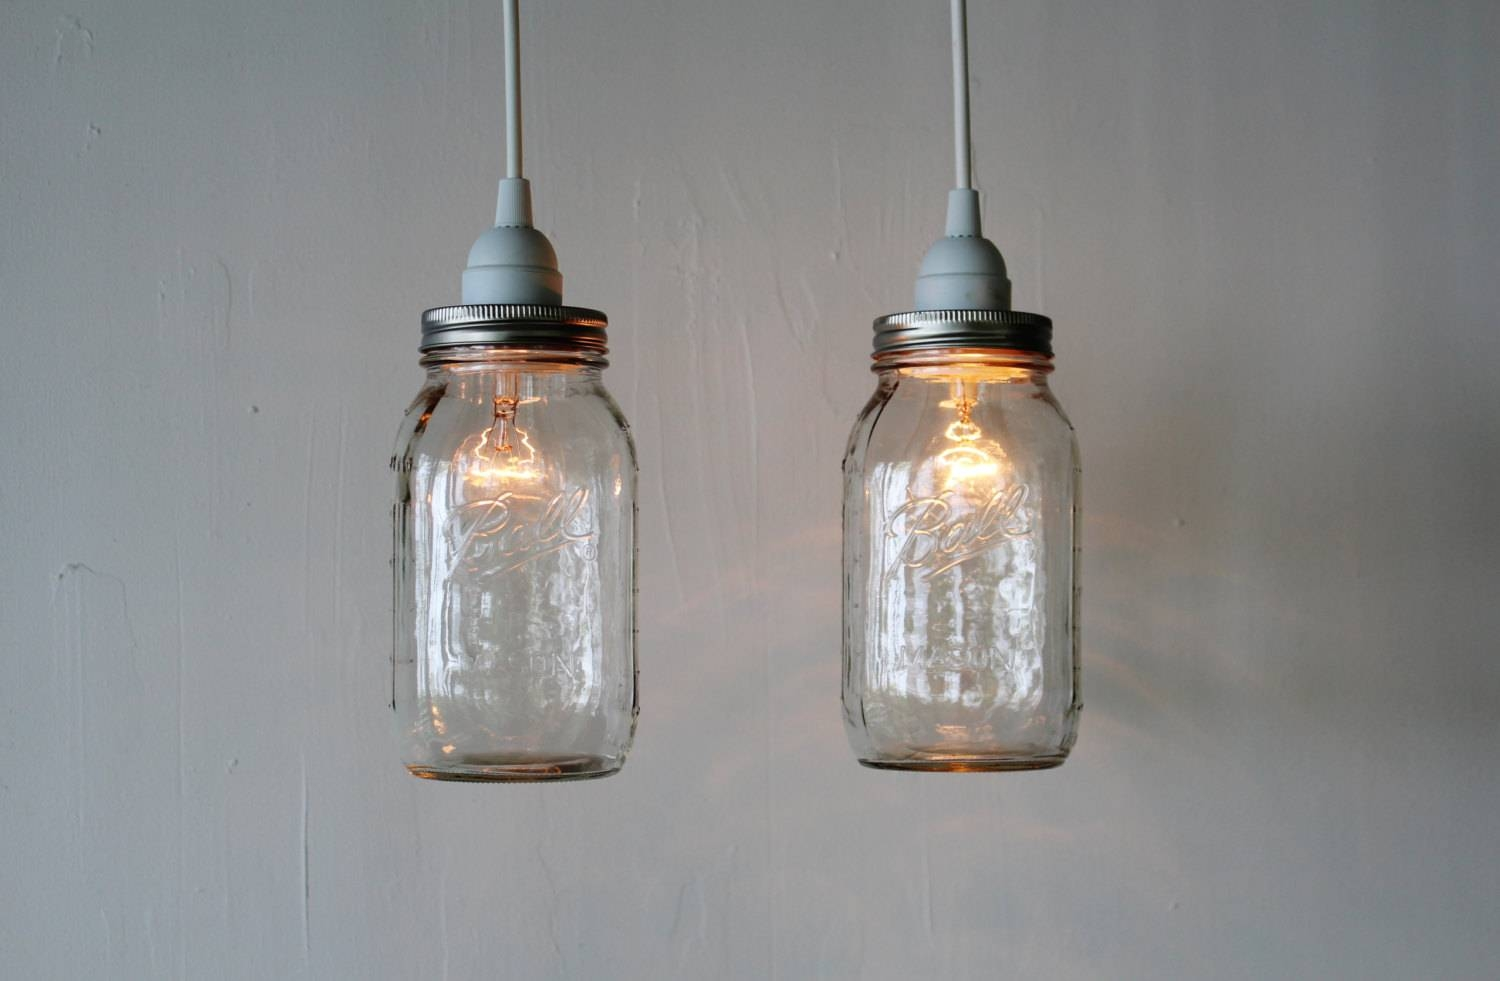 Pair Of Mason Jar Hanging Pendant Lights Upcycled Rustic within Etsy Pendant Lights (Image 10 of 15)